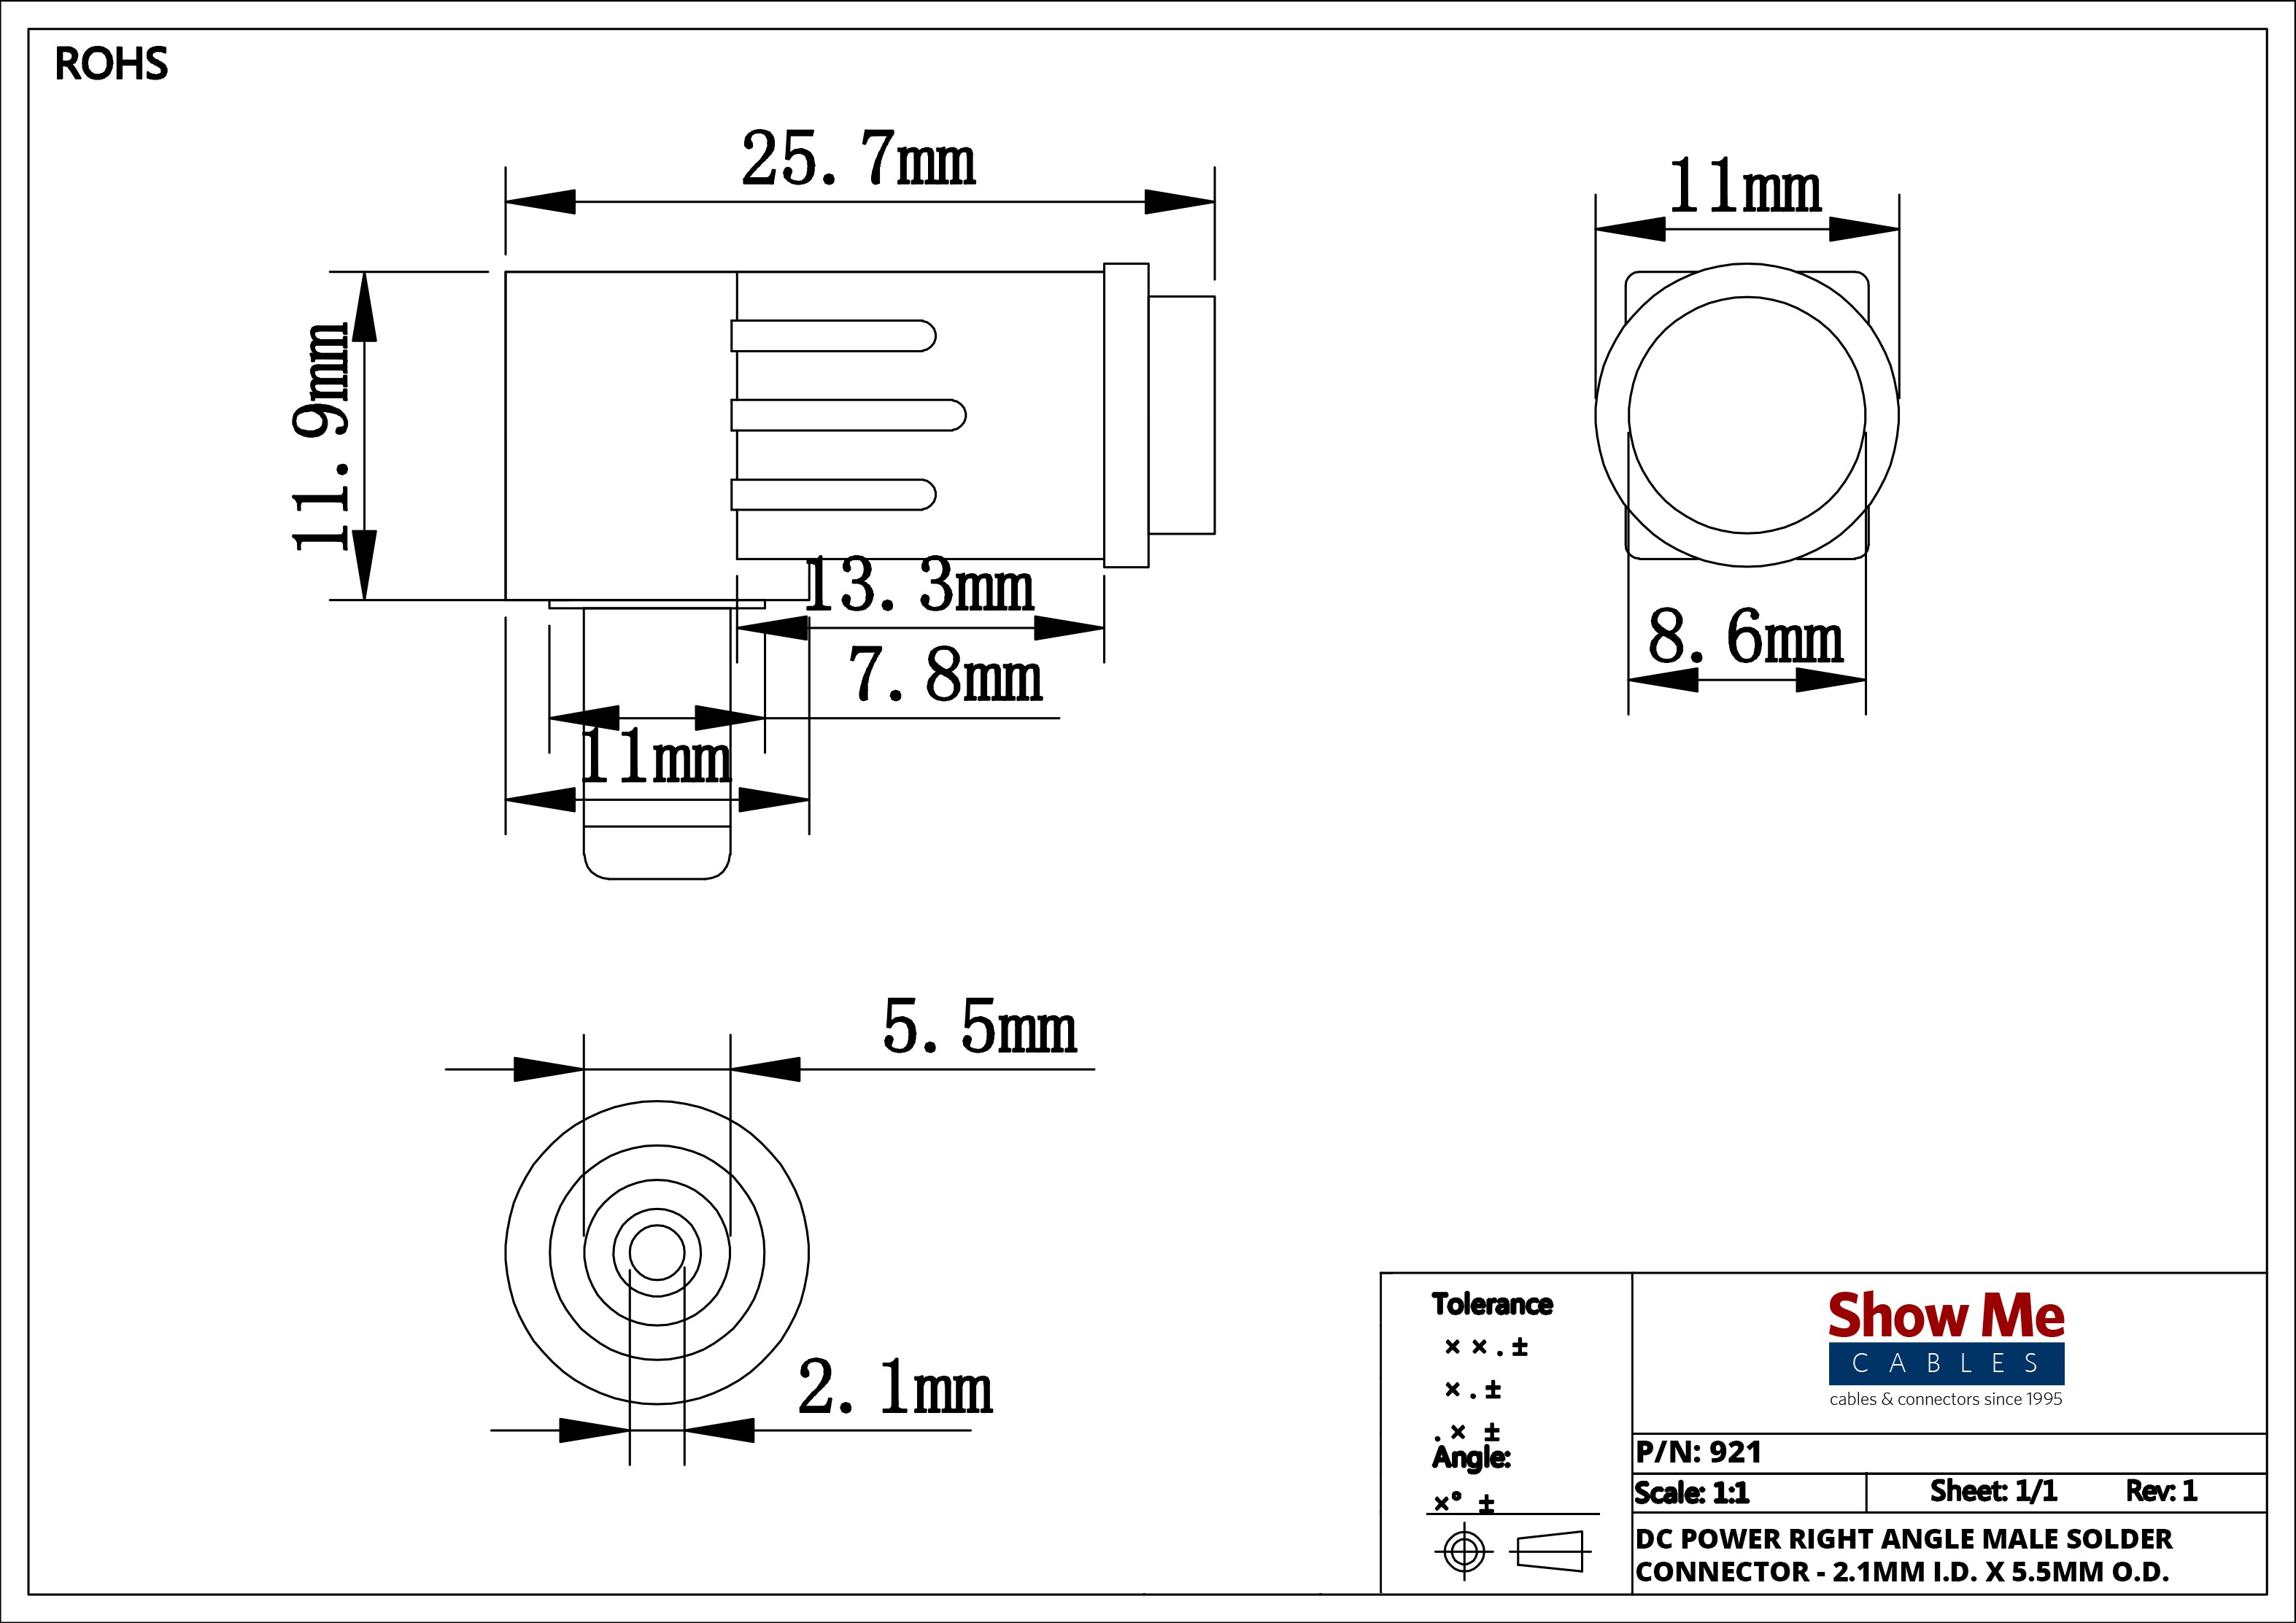 homeline load center hom6 12l100 wiring diagram Download-Homeline Load Center Hom6 12l100 Wiring Diagram Home Speaker Wiring Diagram Collection 3 5 Mm 3-d